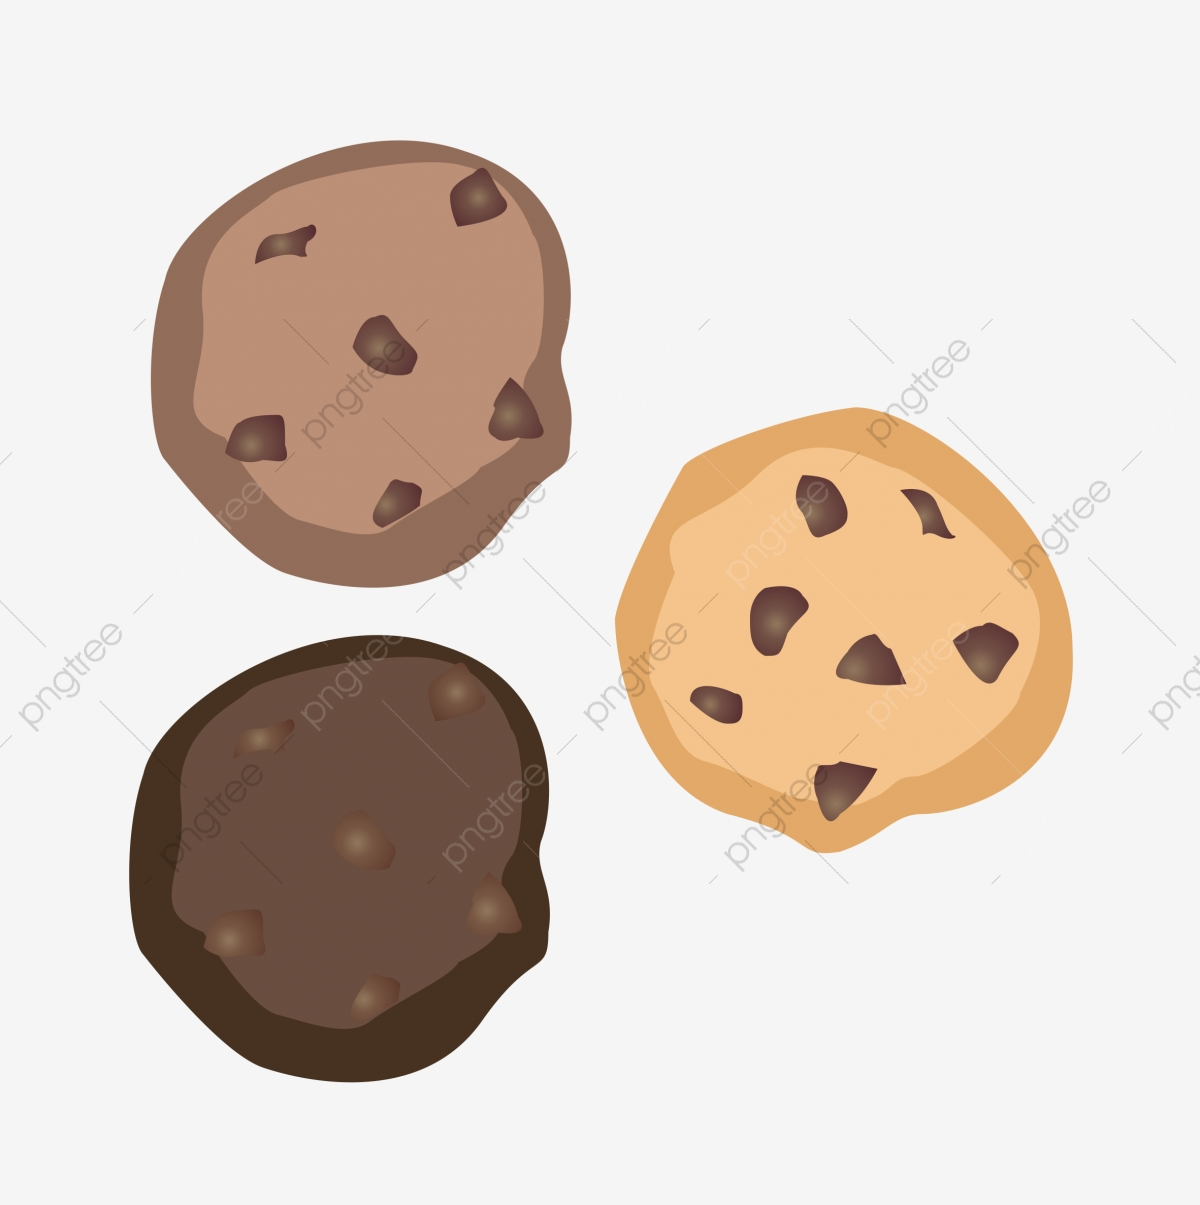 Commercial Cookie Food Decoration Material, Commercially Available.